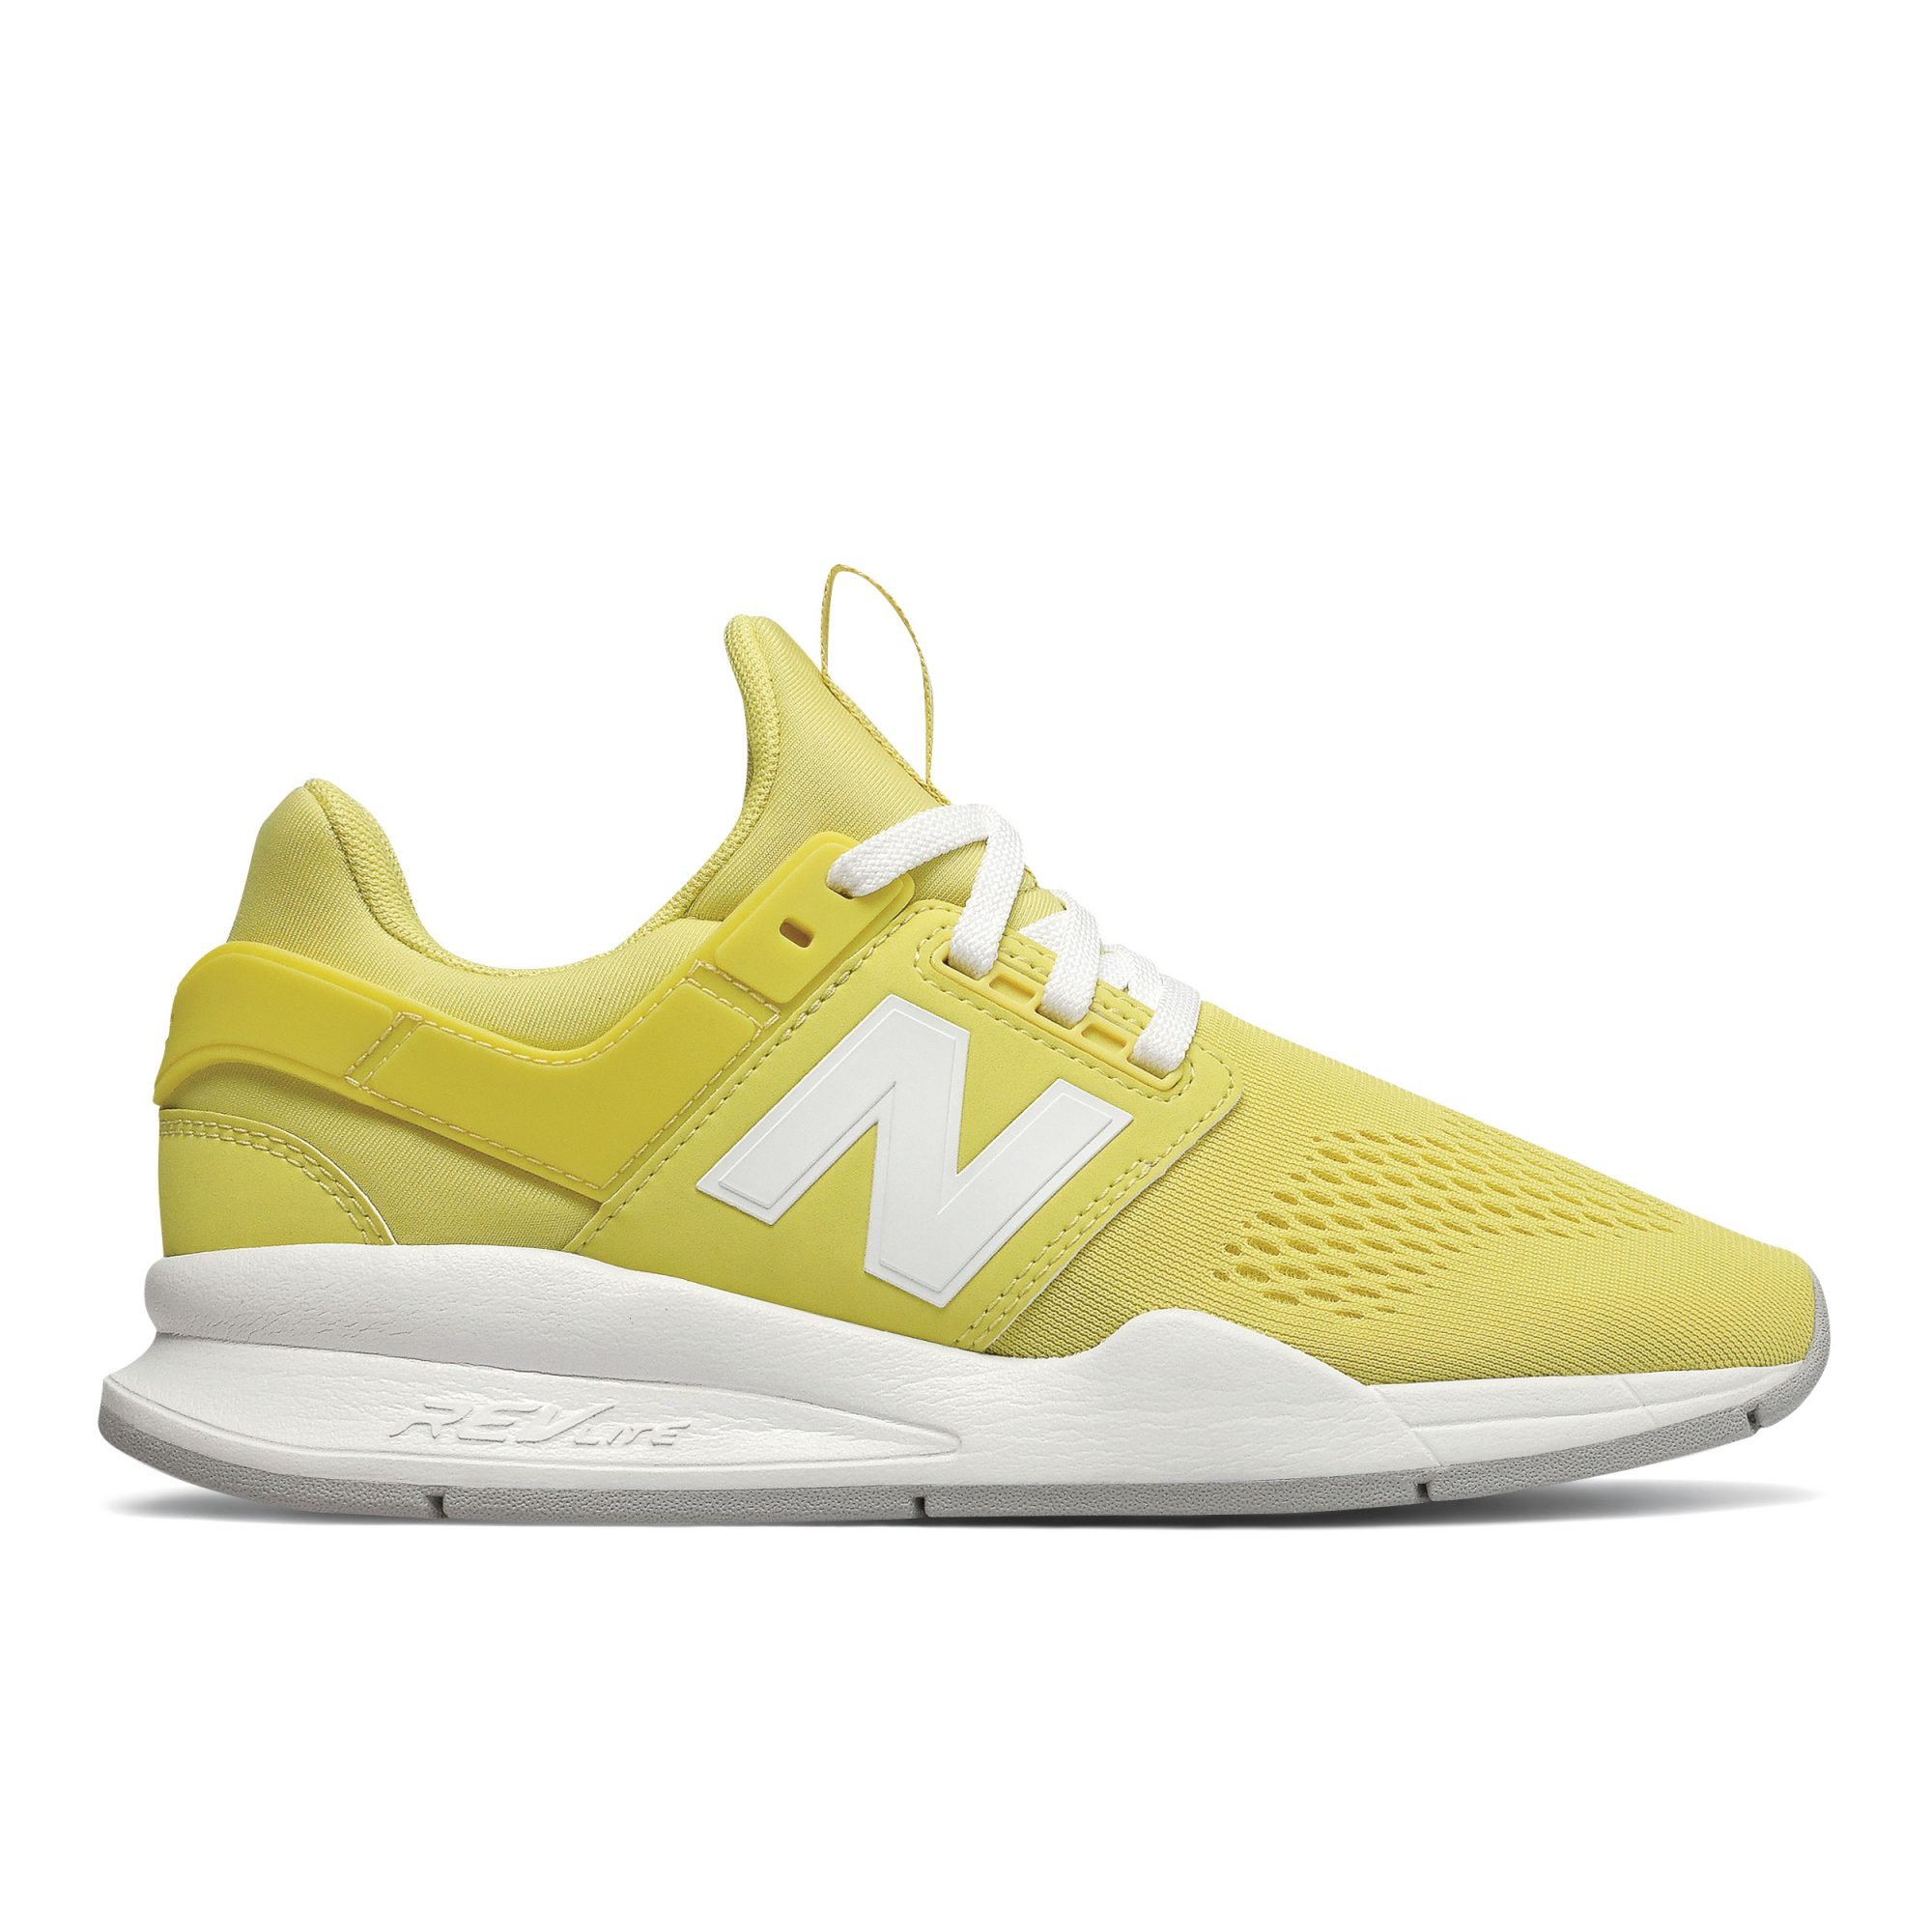 New Balance 247 in Lemonade/White Running Shoes